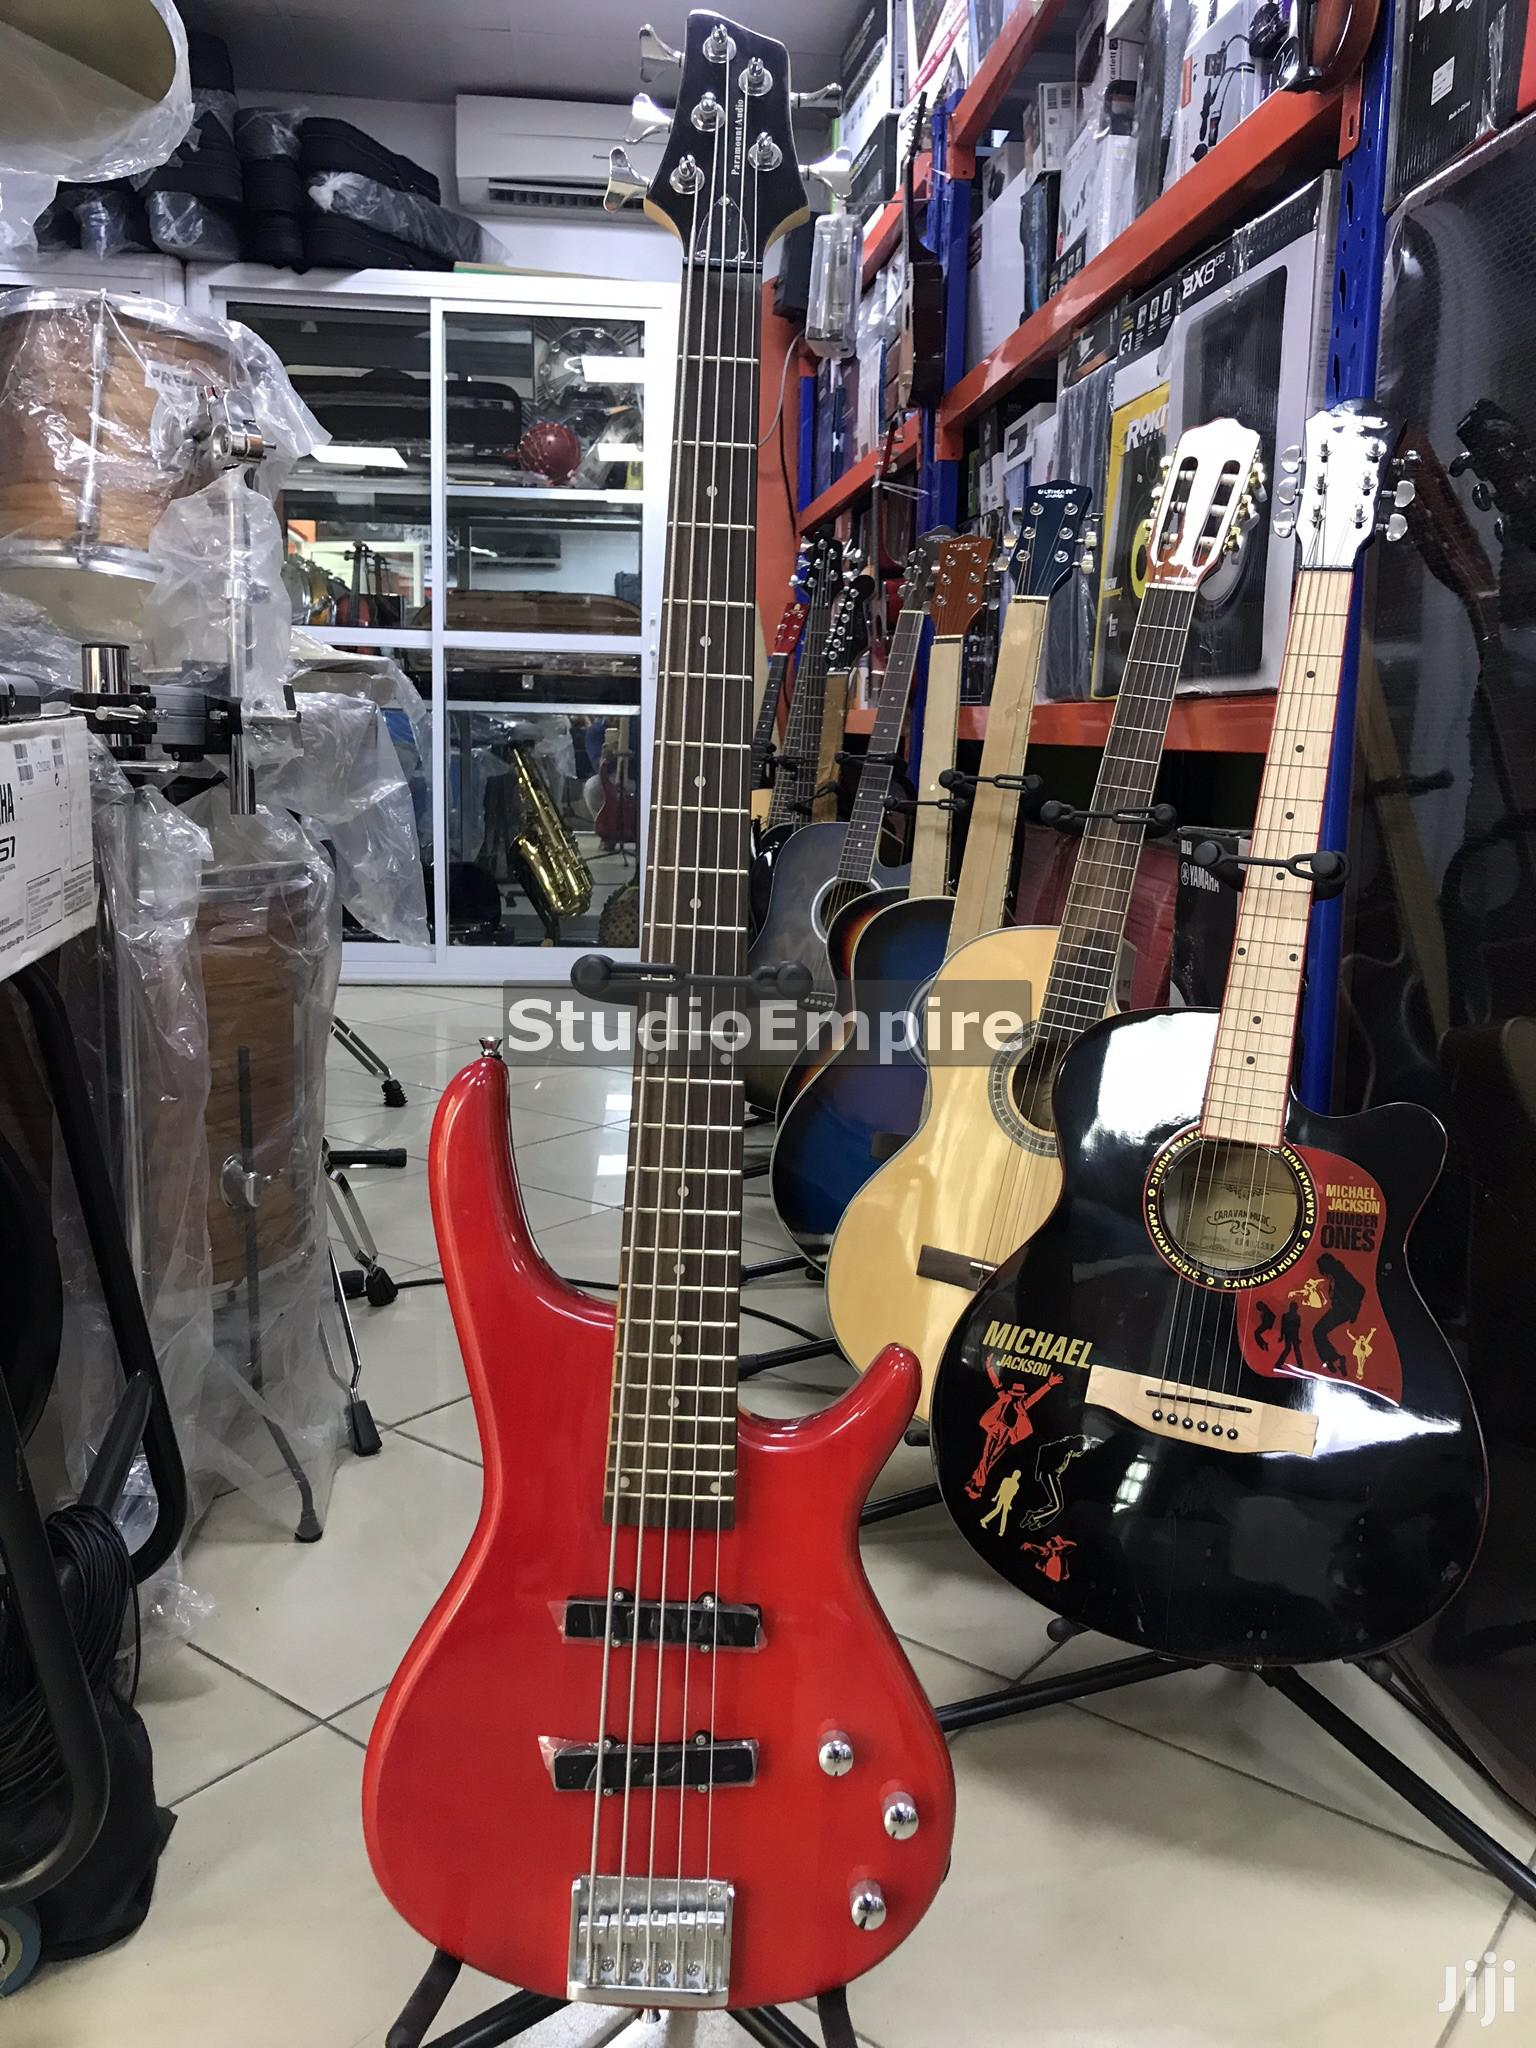 Archive Paramount Professional 5 String Bass Guitar With Bag Belt Red In Lagos State Musical Instruments Gear Studio Empire Jiji Ng